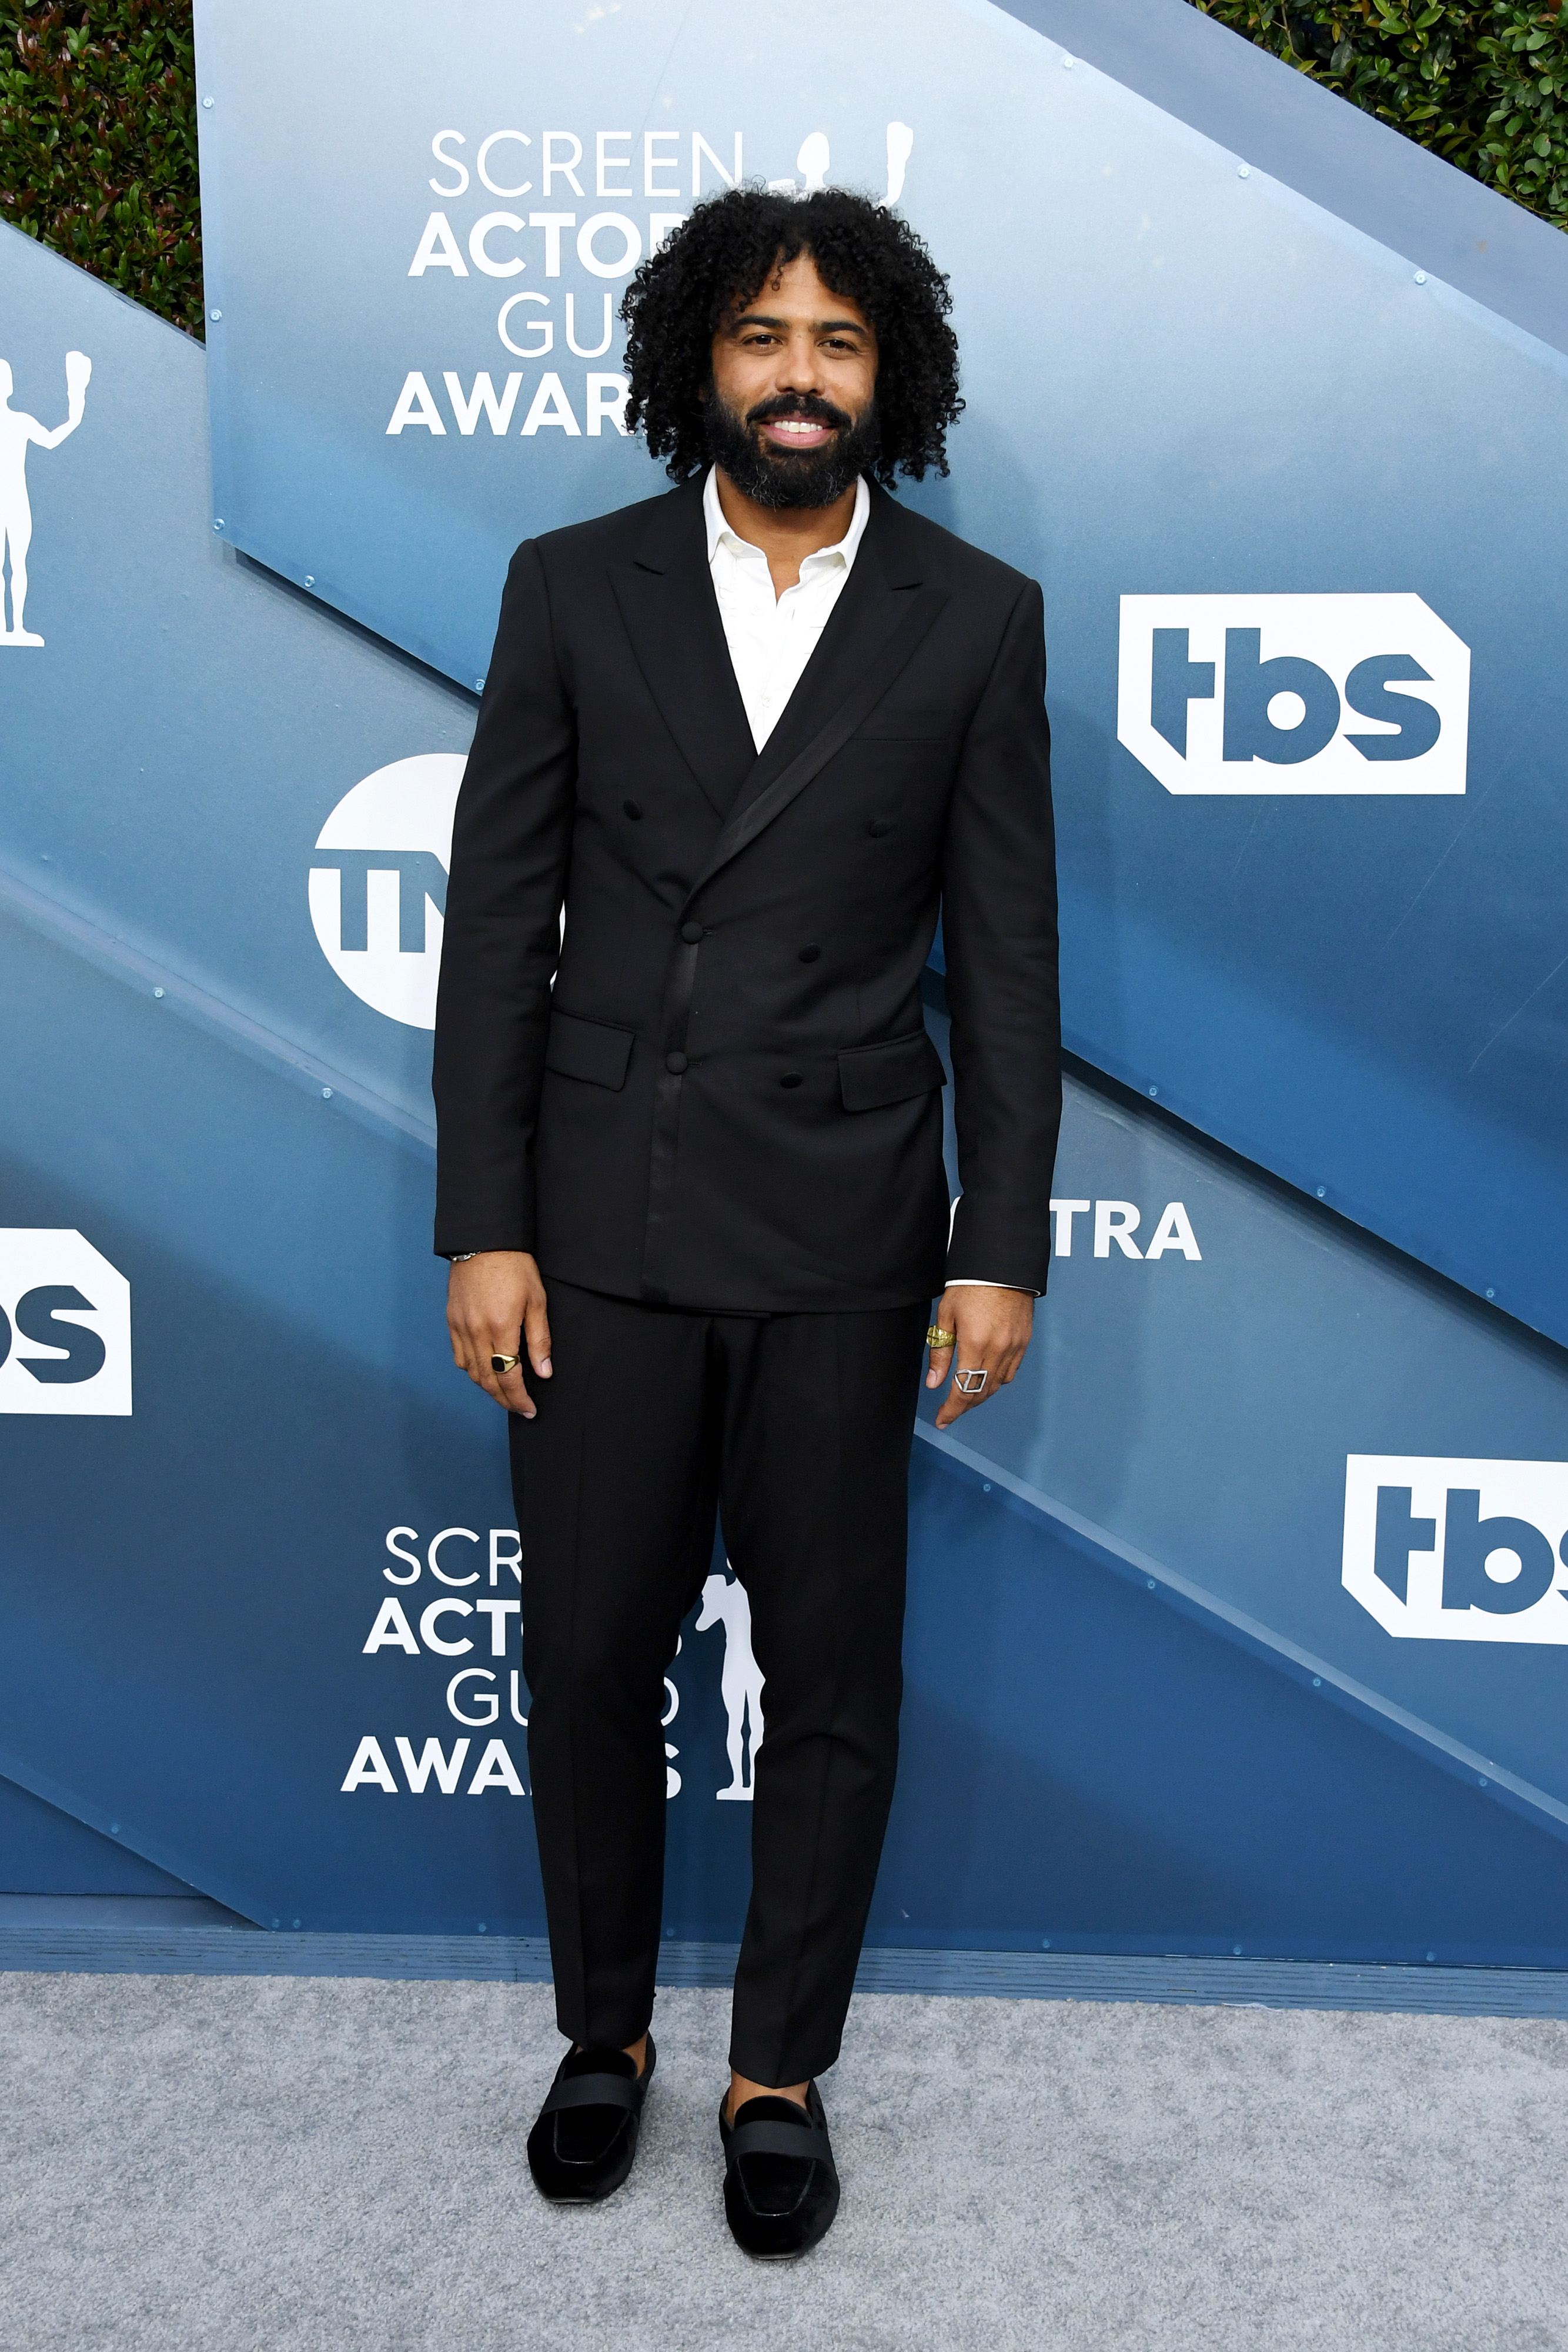 LOS ANGELES, CALIFORNIA - JANUARY 19: Daveed Diggs attends the 26th Annual Screen ActorsGuild Awards at The Shrine Auditorium on January 19, 2020 in Los Angeles, California. (Photo by Jon Kopaloff/Getty Images)